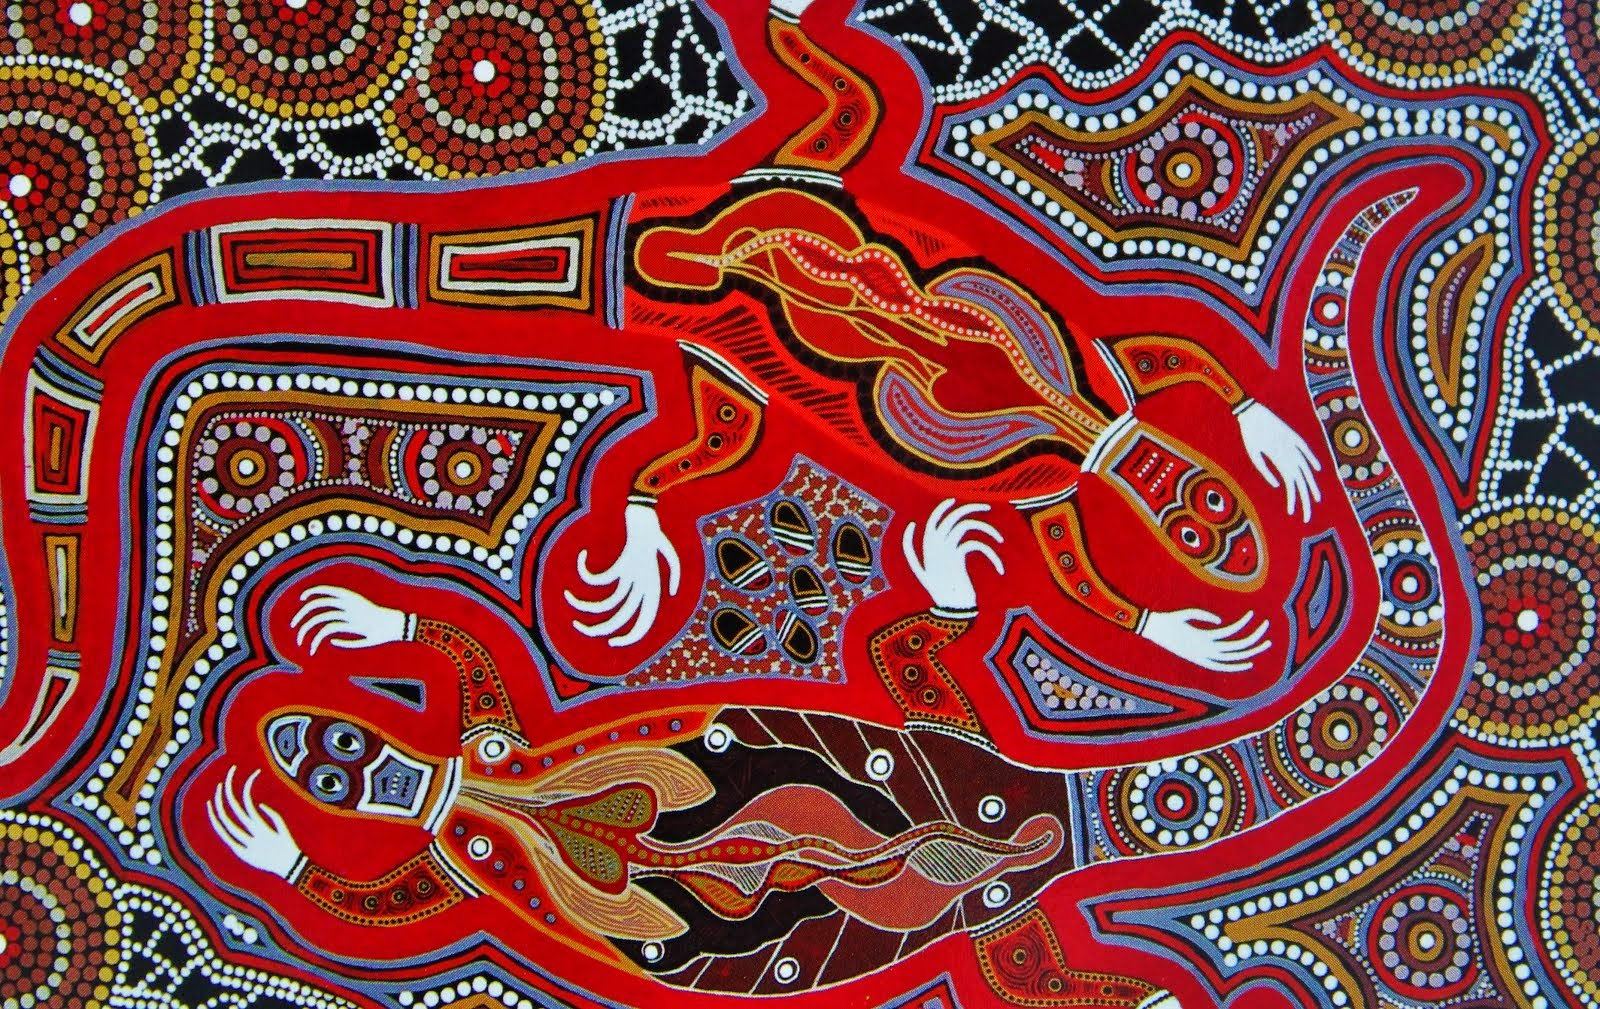 Aboriginal Art from Australia